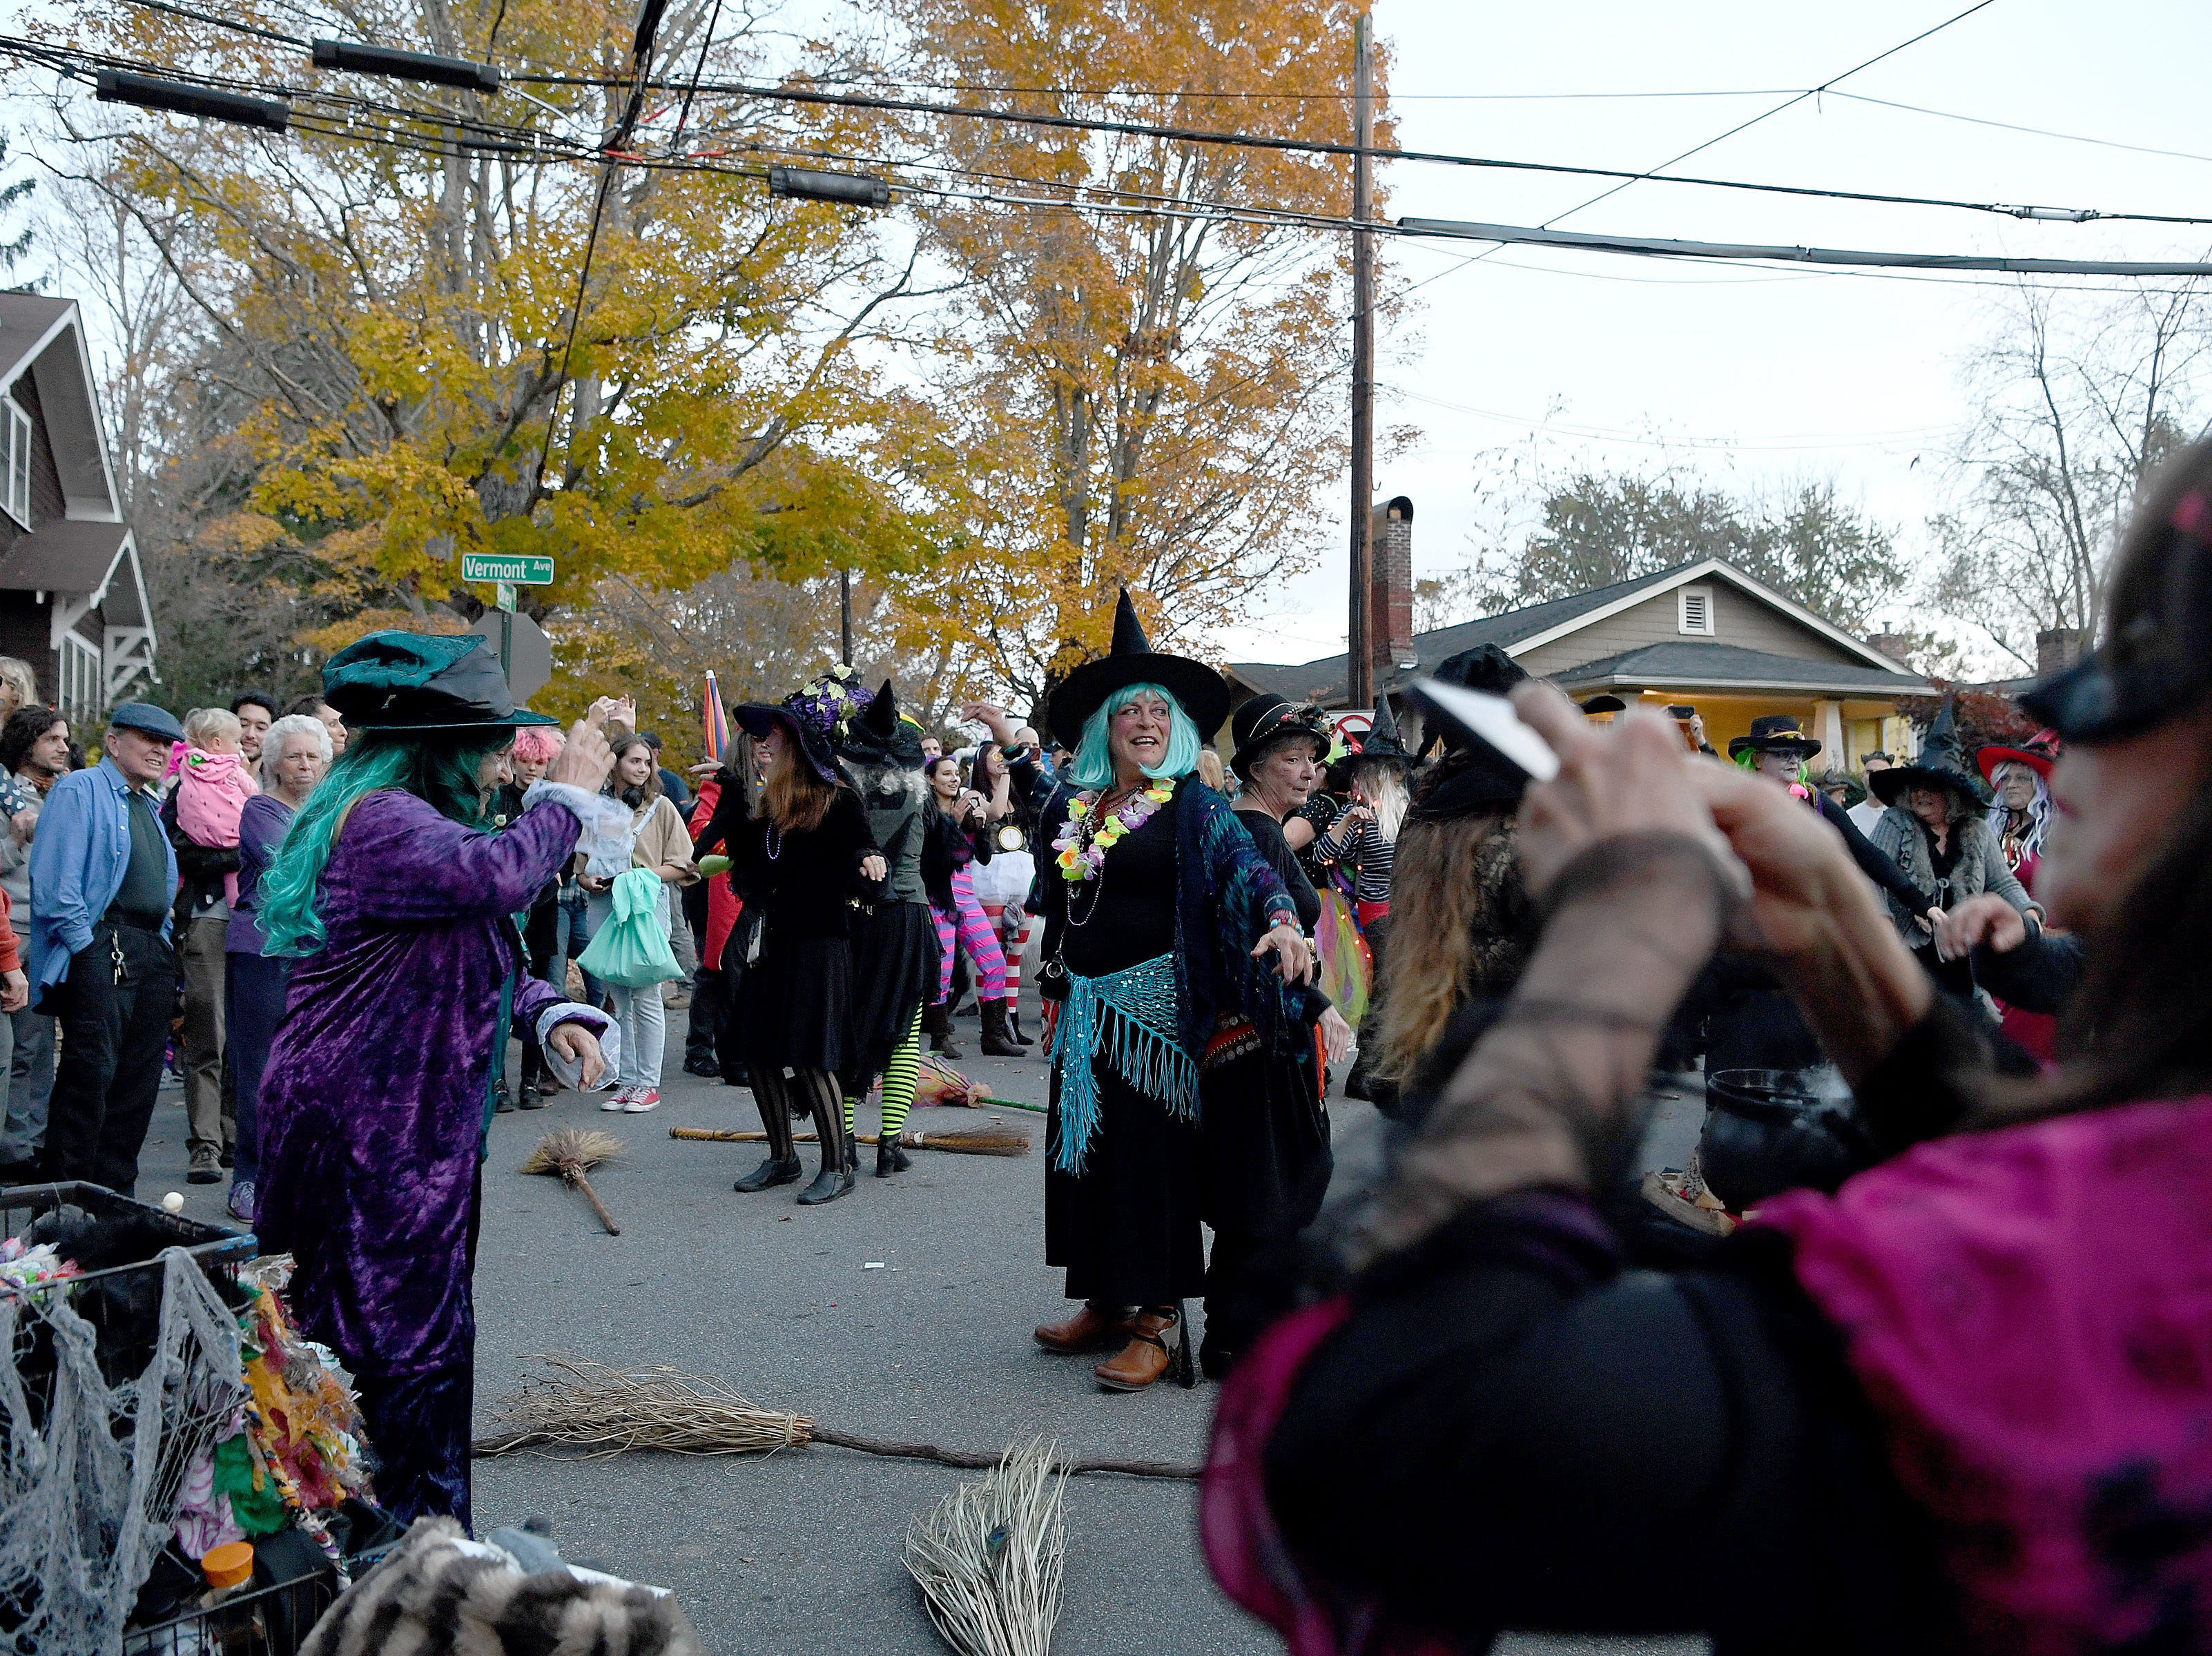 Witches flash mob an intersection of Vermont Avenue with a choreographed dance during the street's annual Halloween celebration on Oct. 31, 2018.